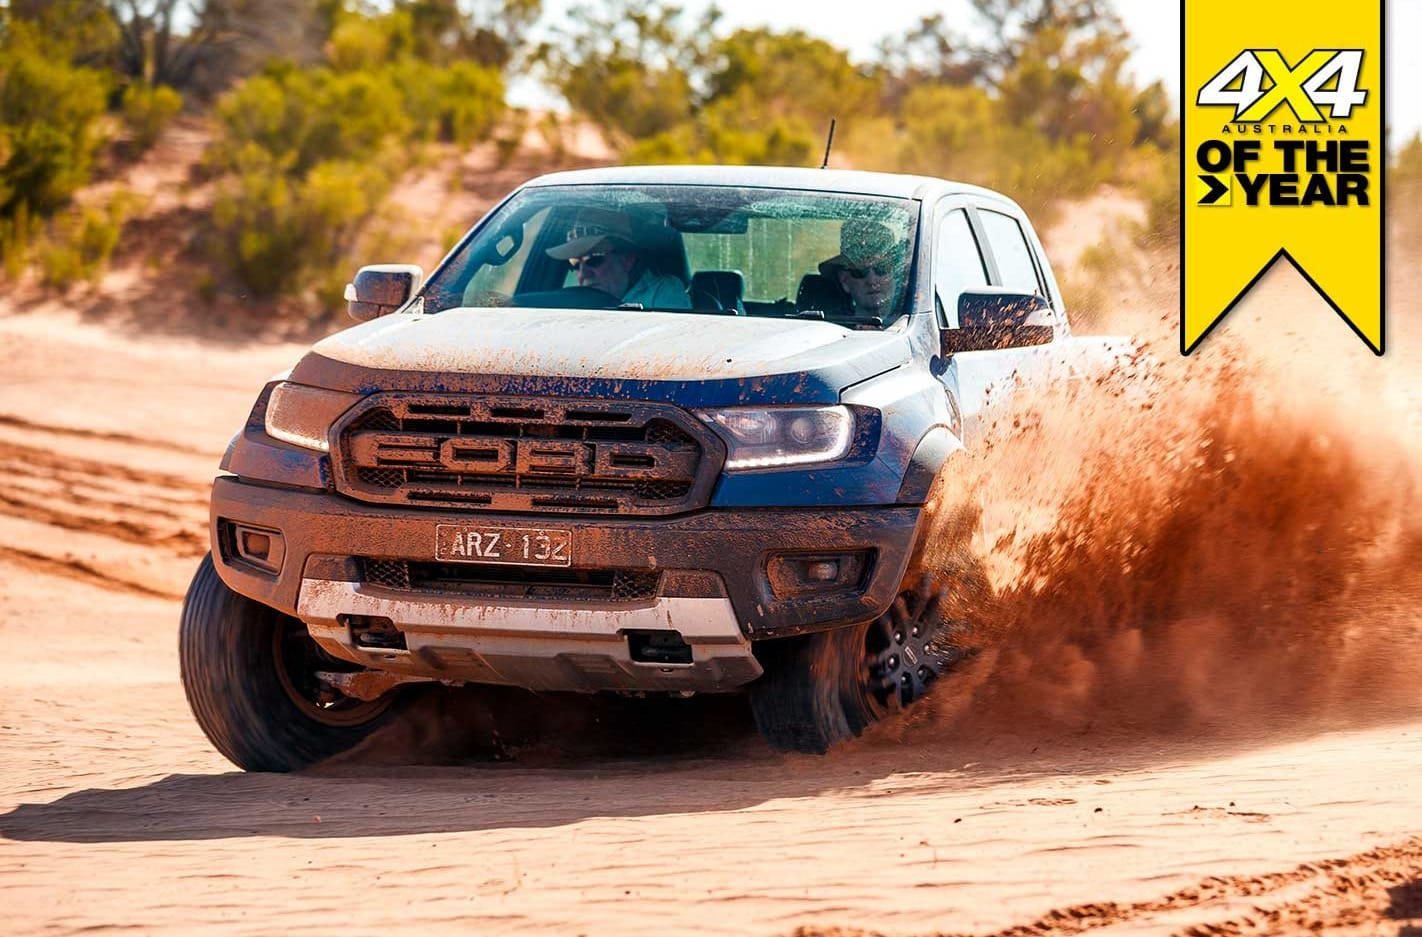 Ford Ranger Raptor 2019 4x4 of the Year contender